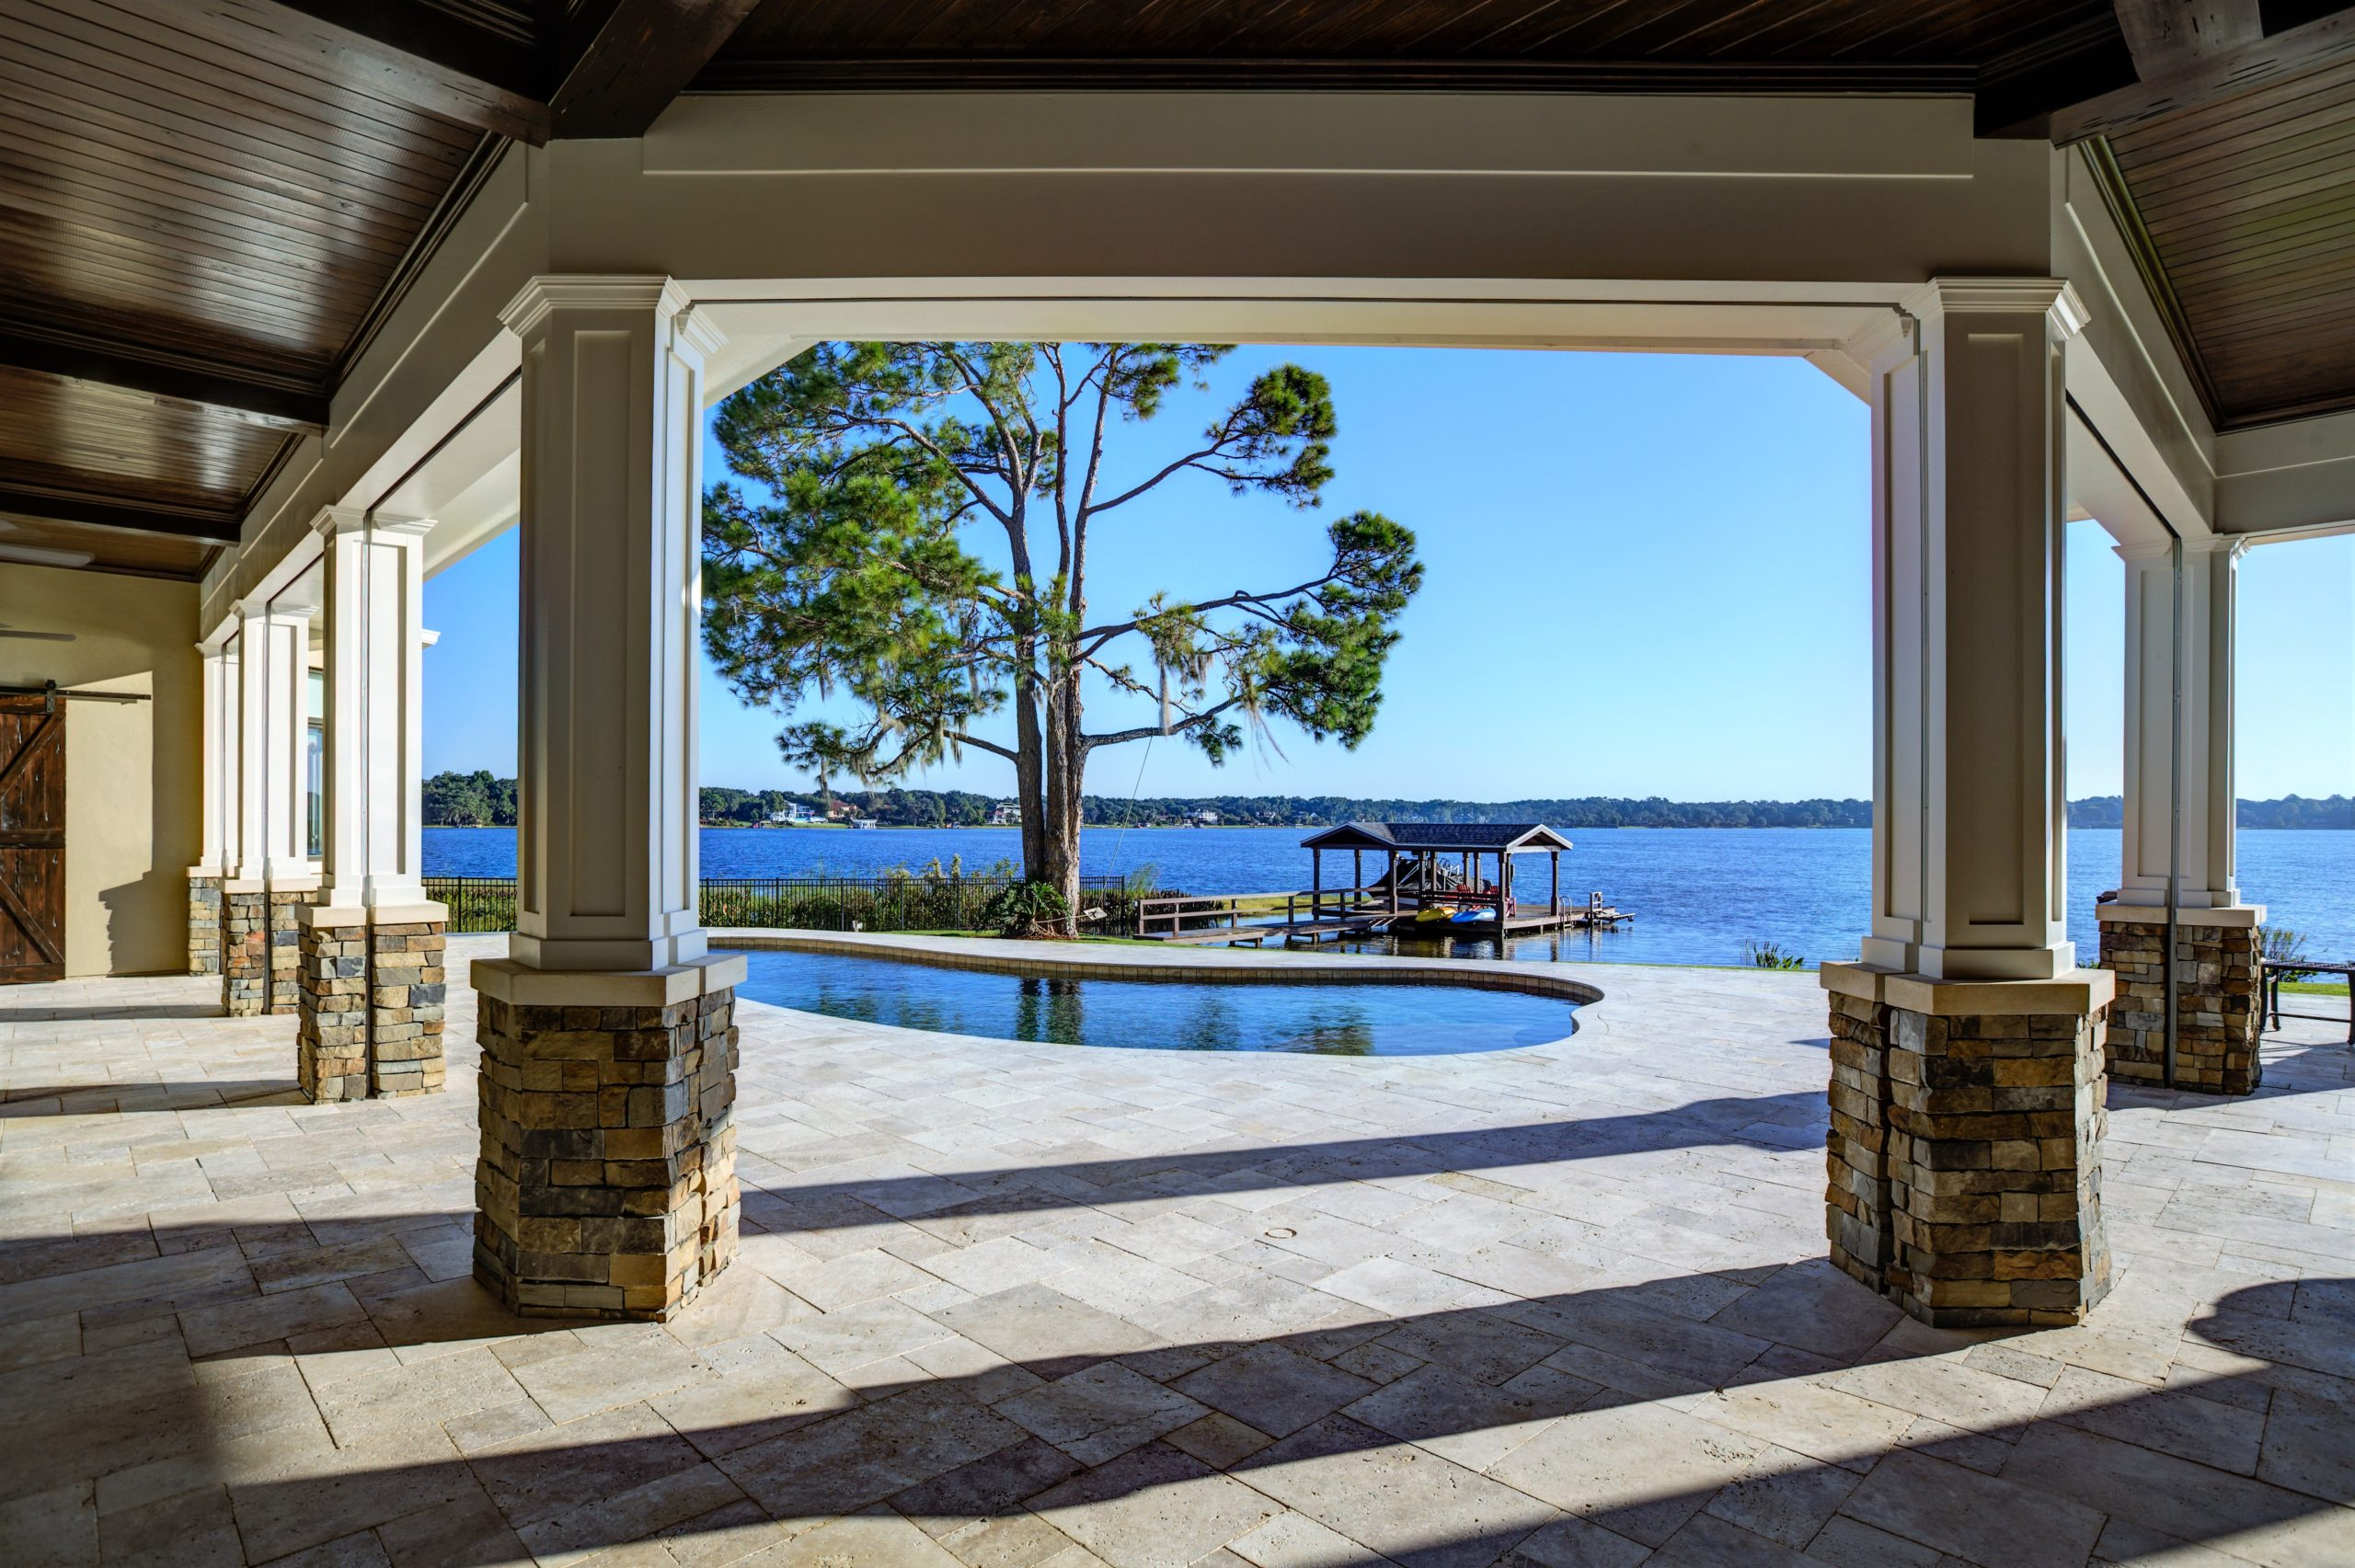 Orlando Custom Home with pool and fountains